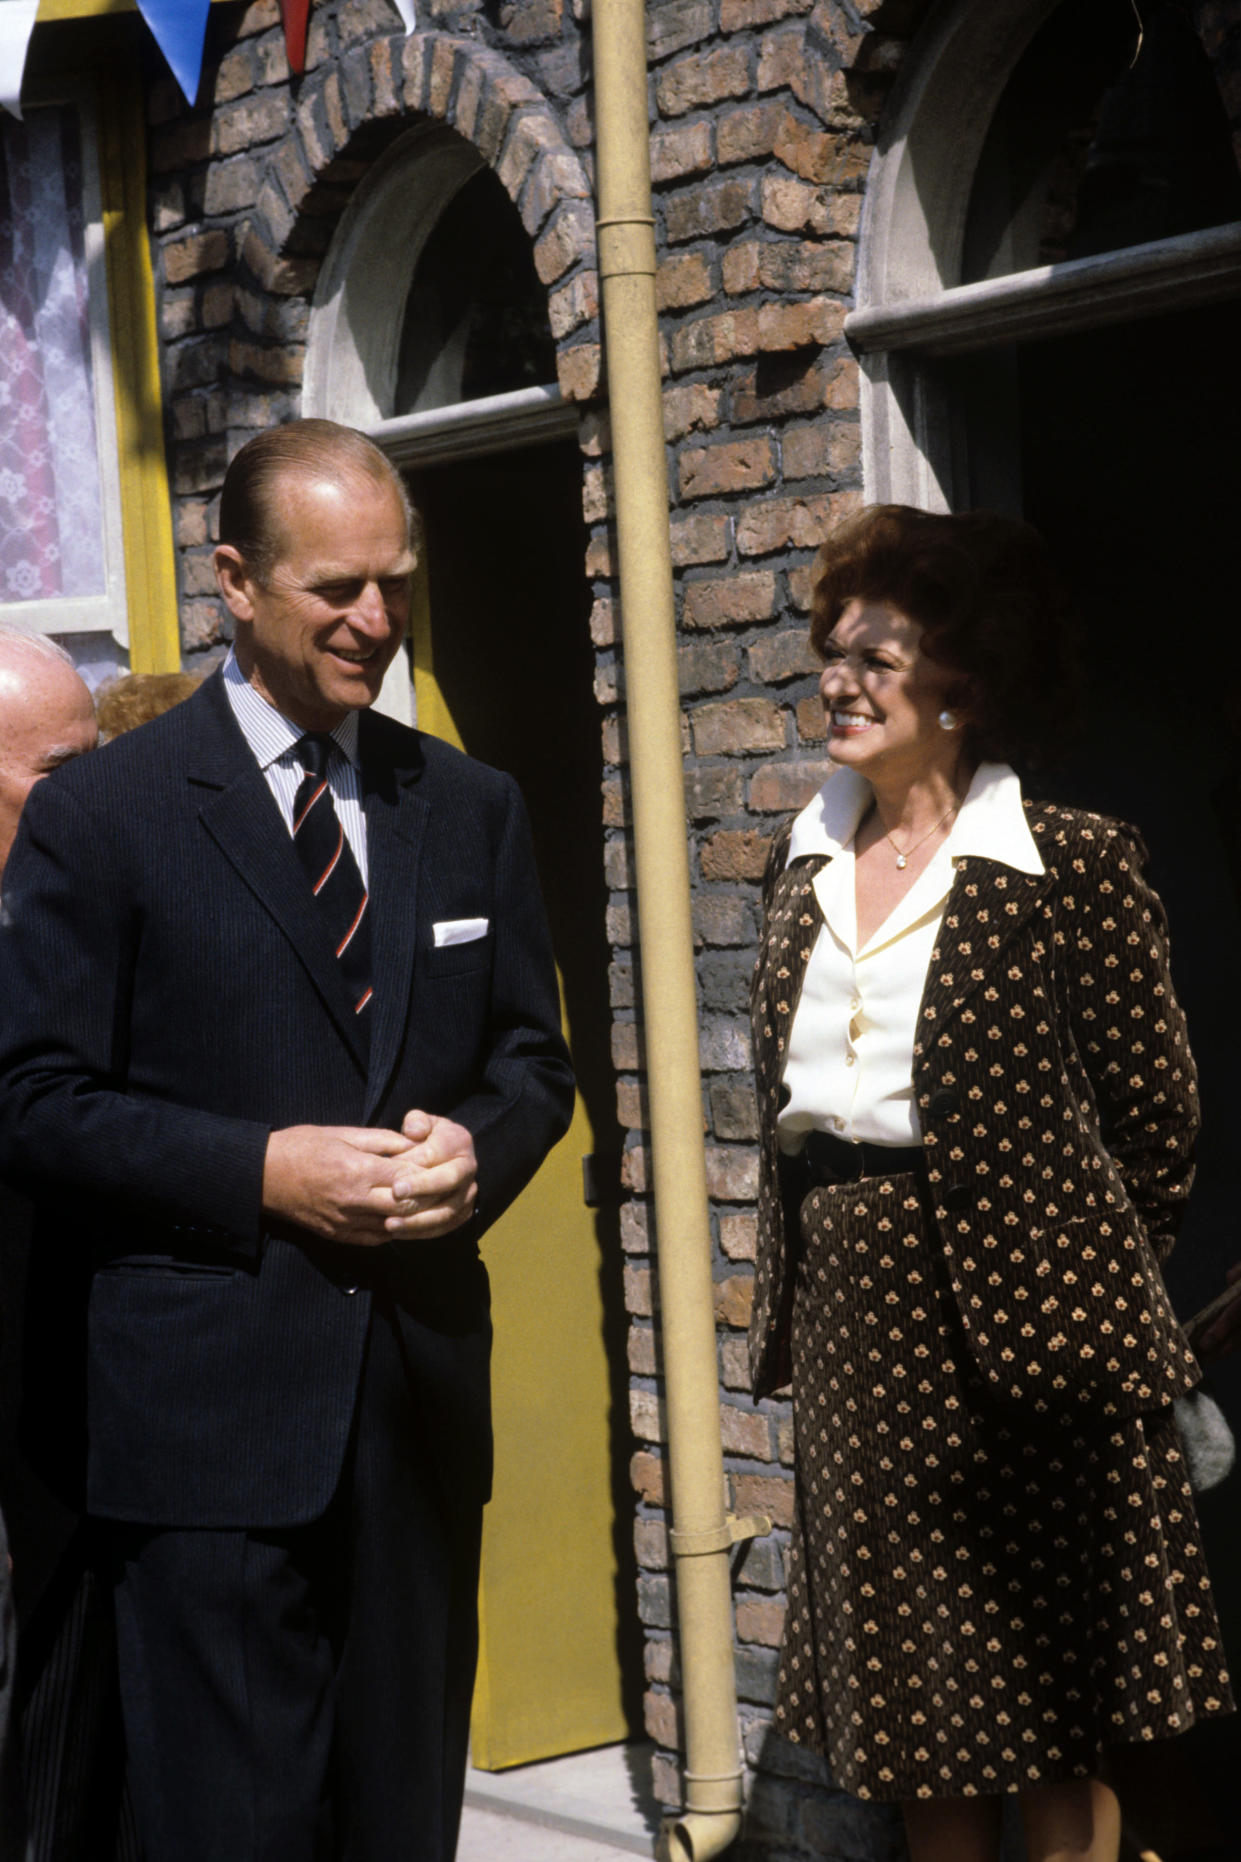 Prince Philip on the set of Coronation St in 1982. (PA Images)